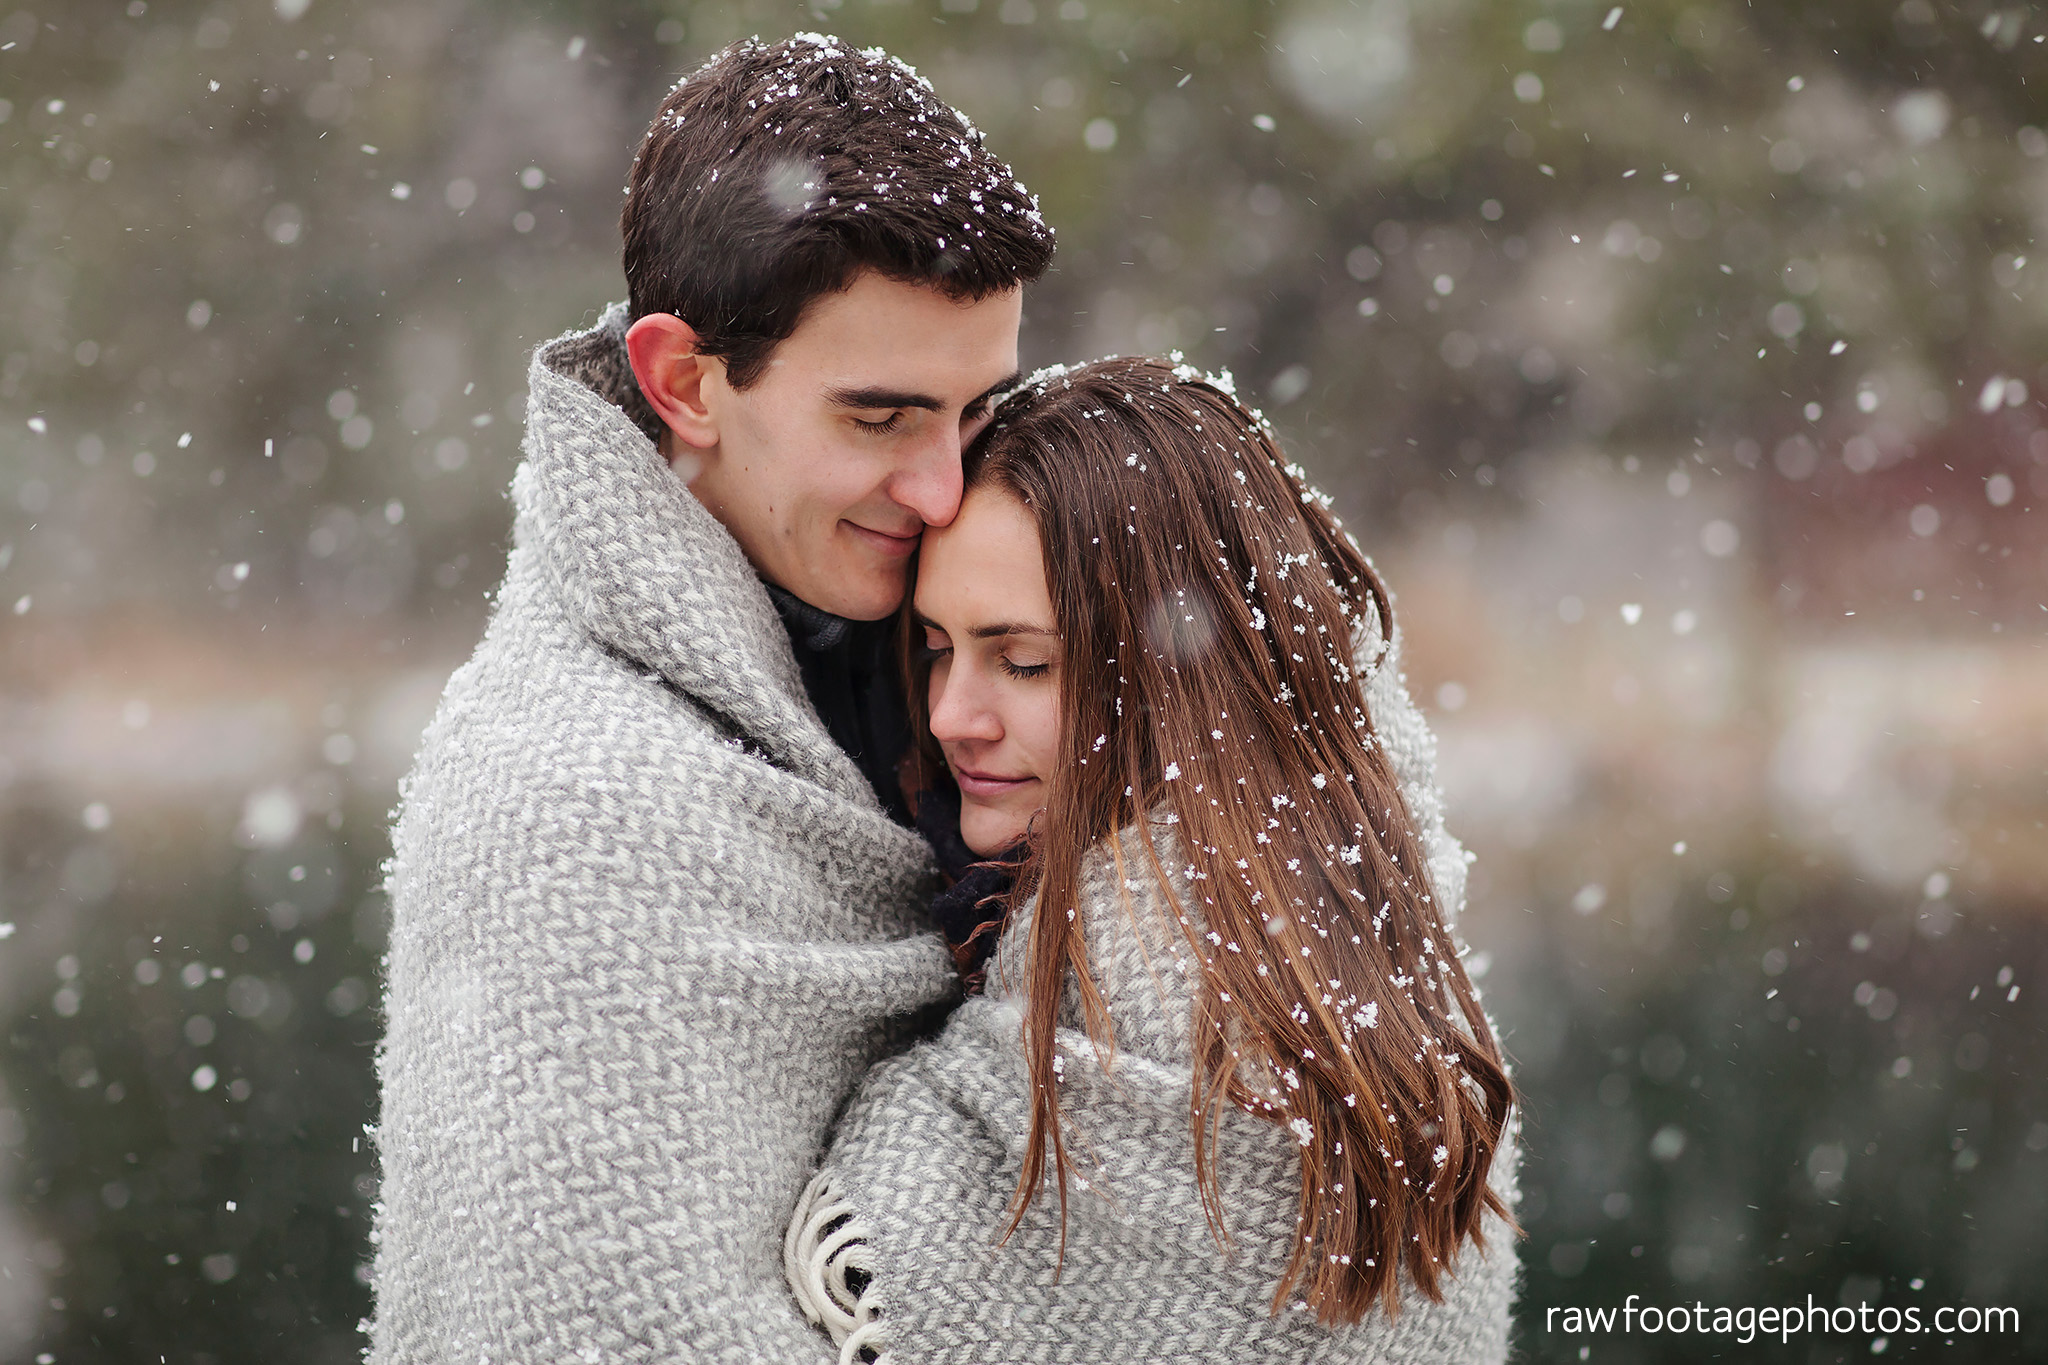 london_ontario_wedding_photographer-snowy_engagement_session-winter-barn-farm-snowflakes-blizzard-raw_footage_photography017.jpg